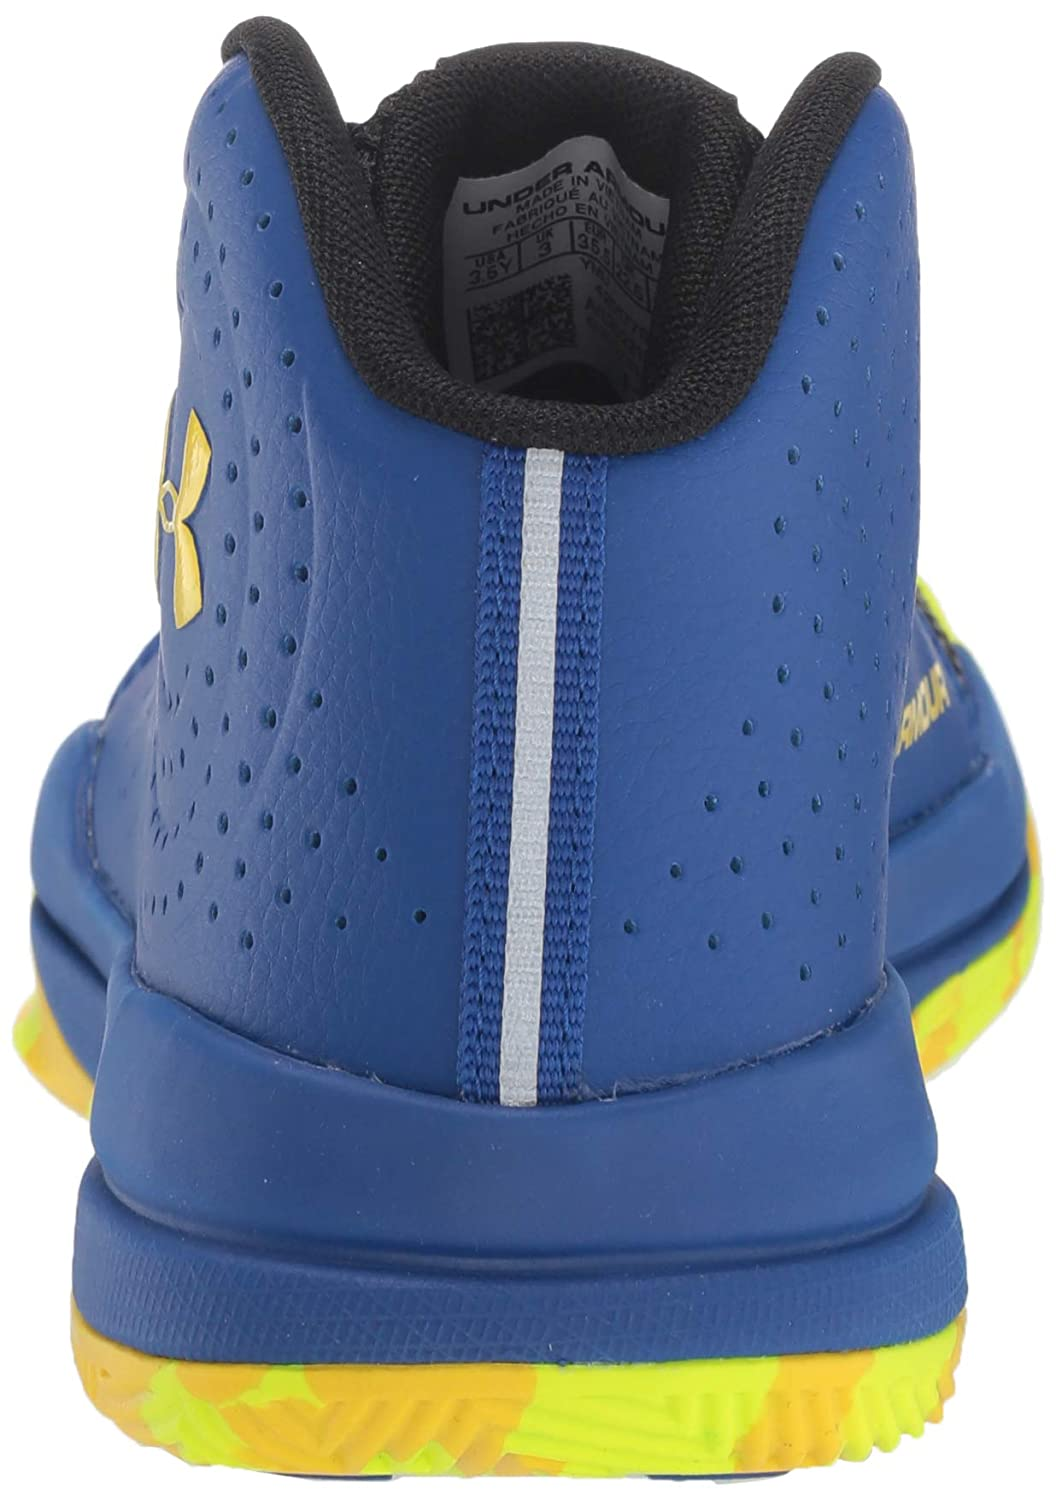 Zapatos de Baloncesto Unisex Ni/ños Under Armour UA GS Jet 2019